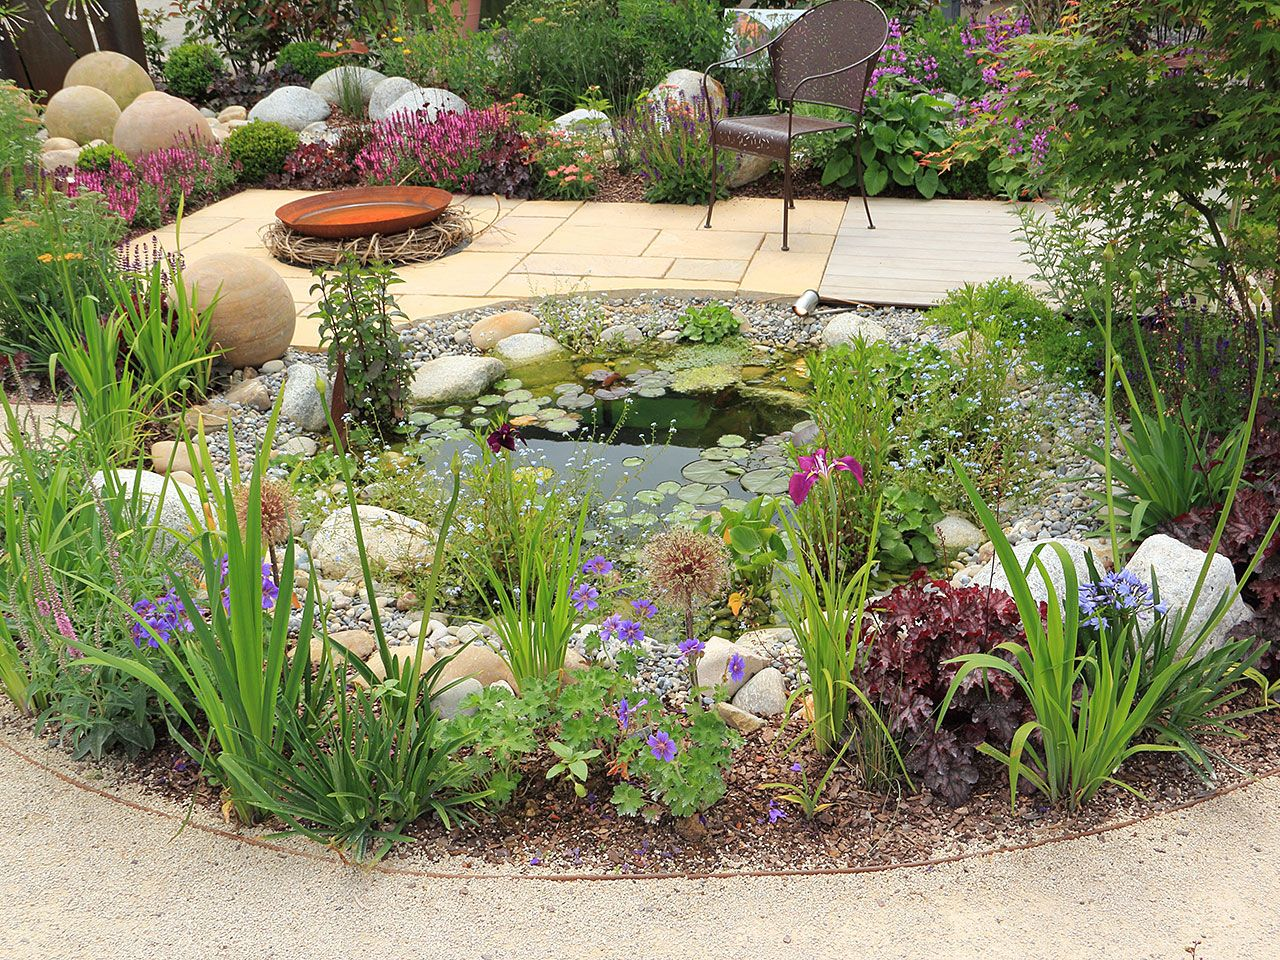 Building a wildlife pond is the best way to attract